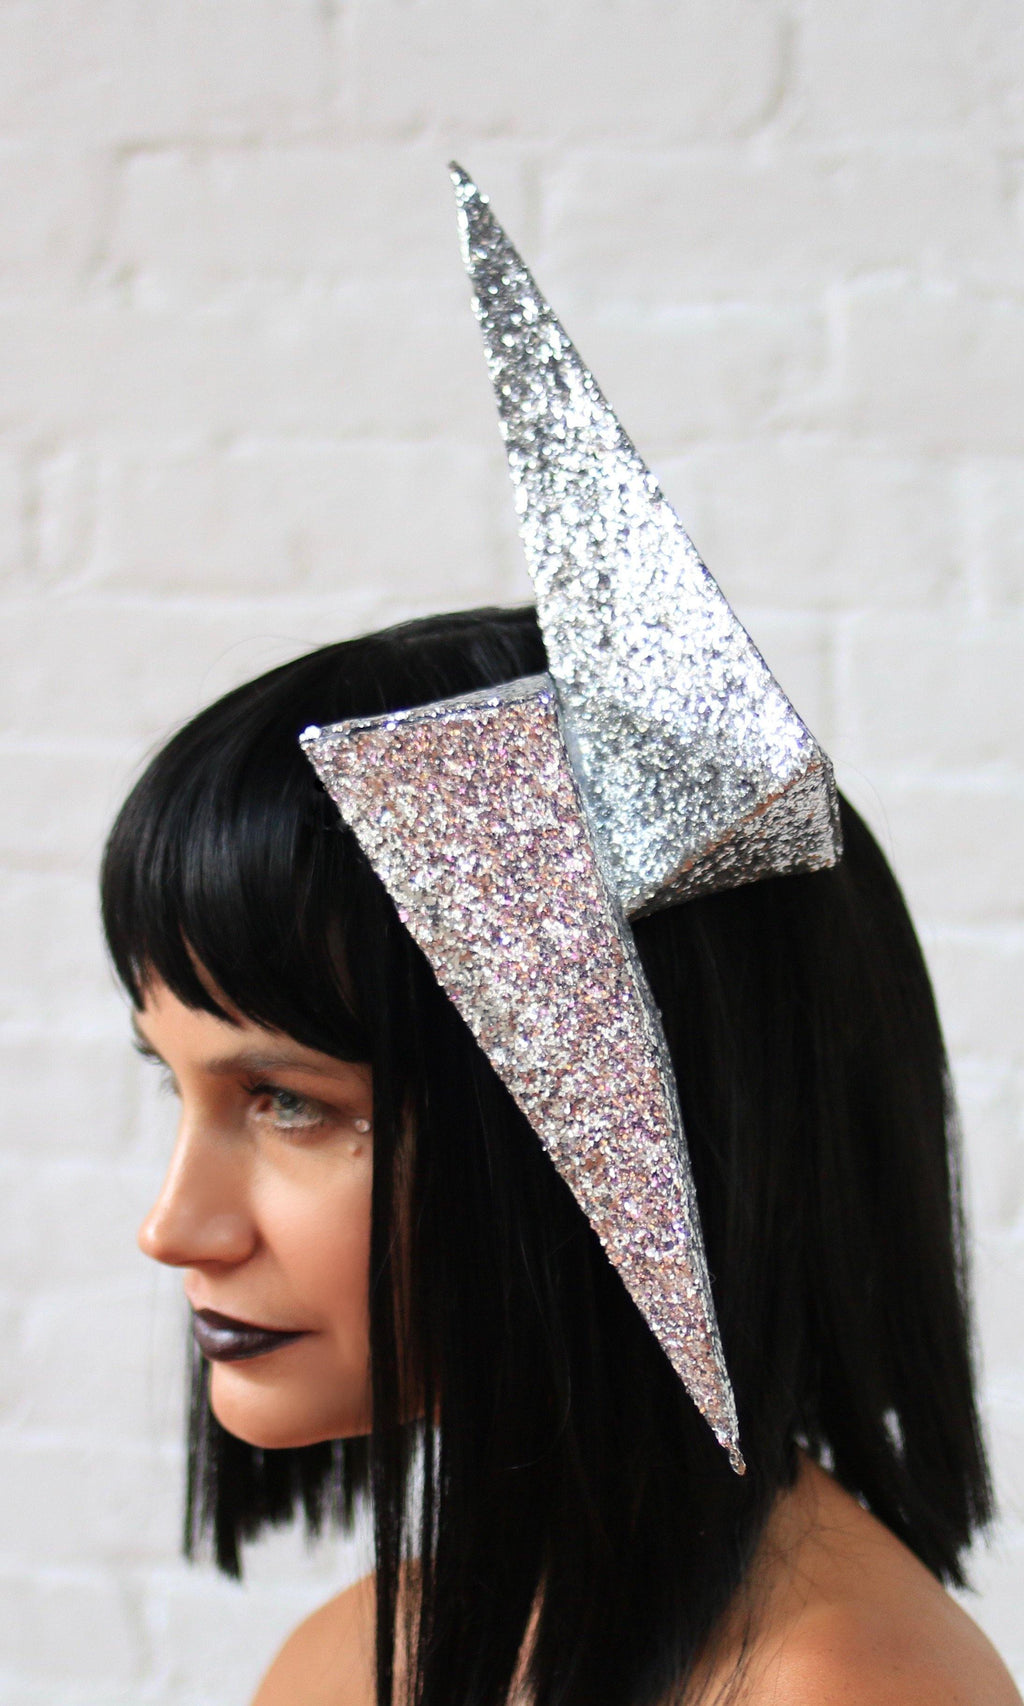 Kryon headpiece